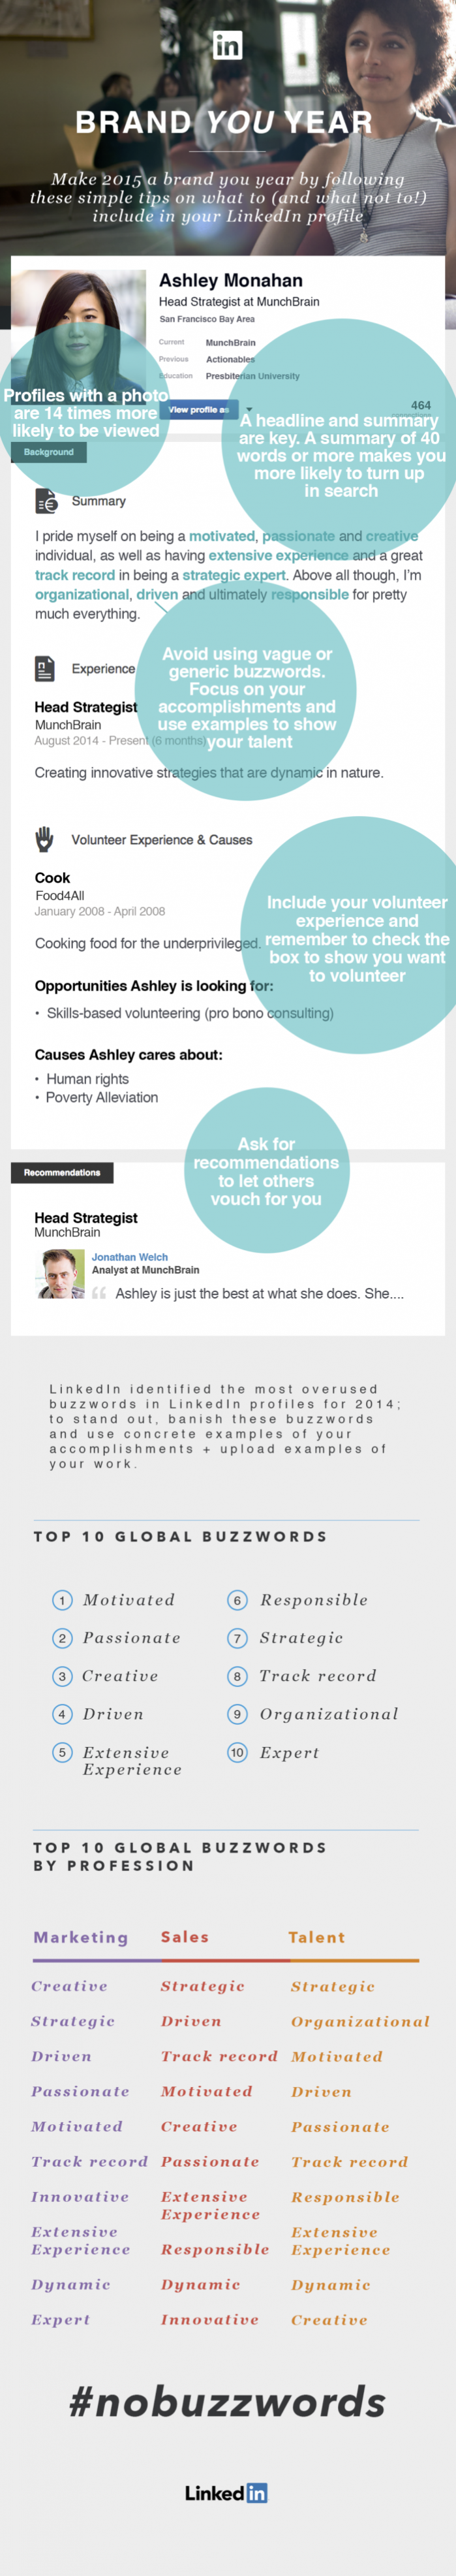 How to Build a Strong LinkedIn Profile for 2015 ...